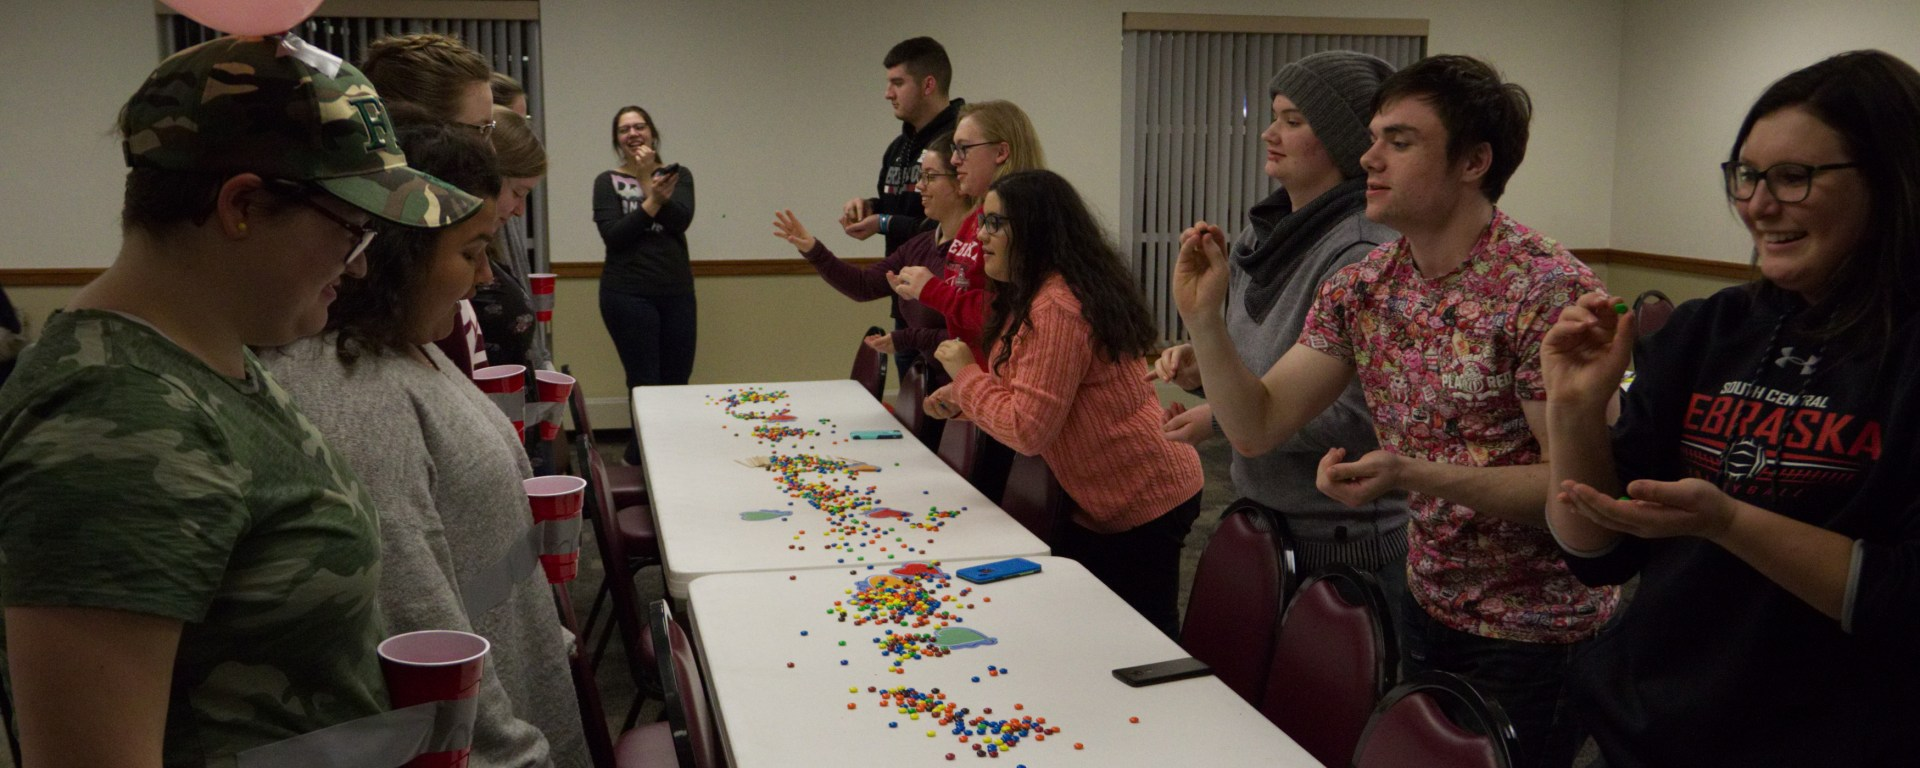 Students compete to throw the most M&Ms into a cup taped around their partner's waist